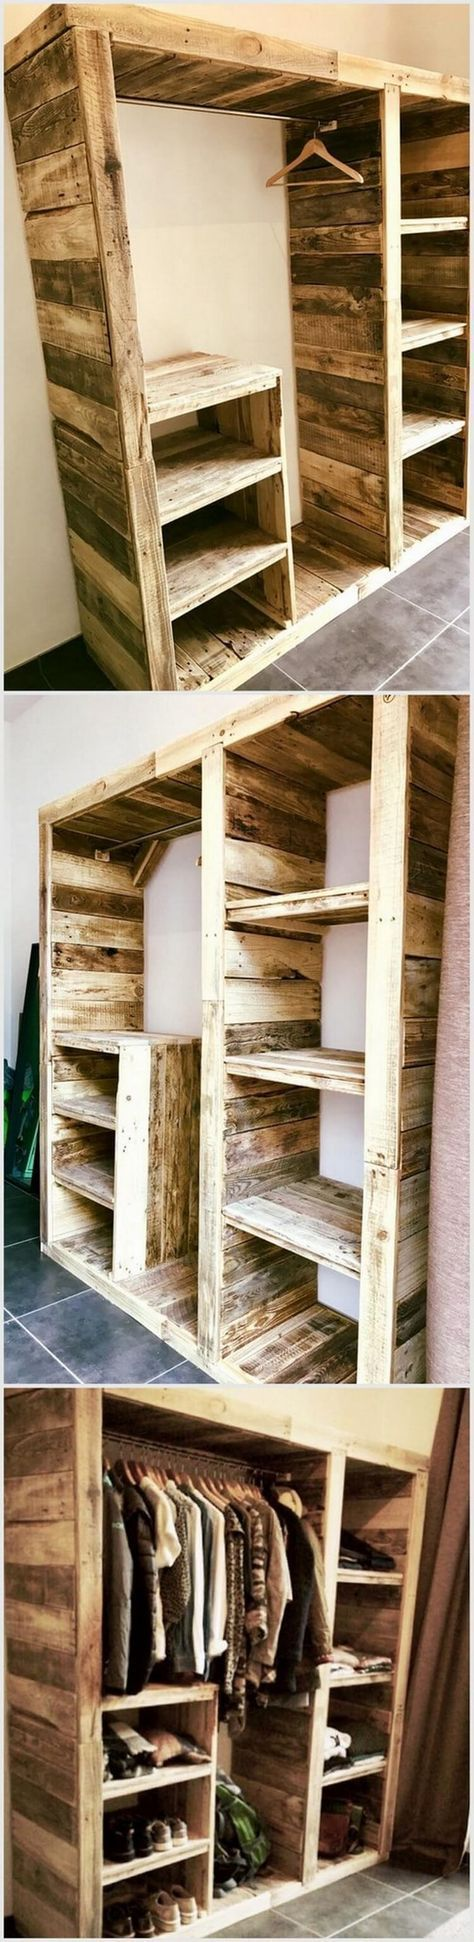 2043 best Pallet upcycled INSPIRATION ;) images on Pinterest ...